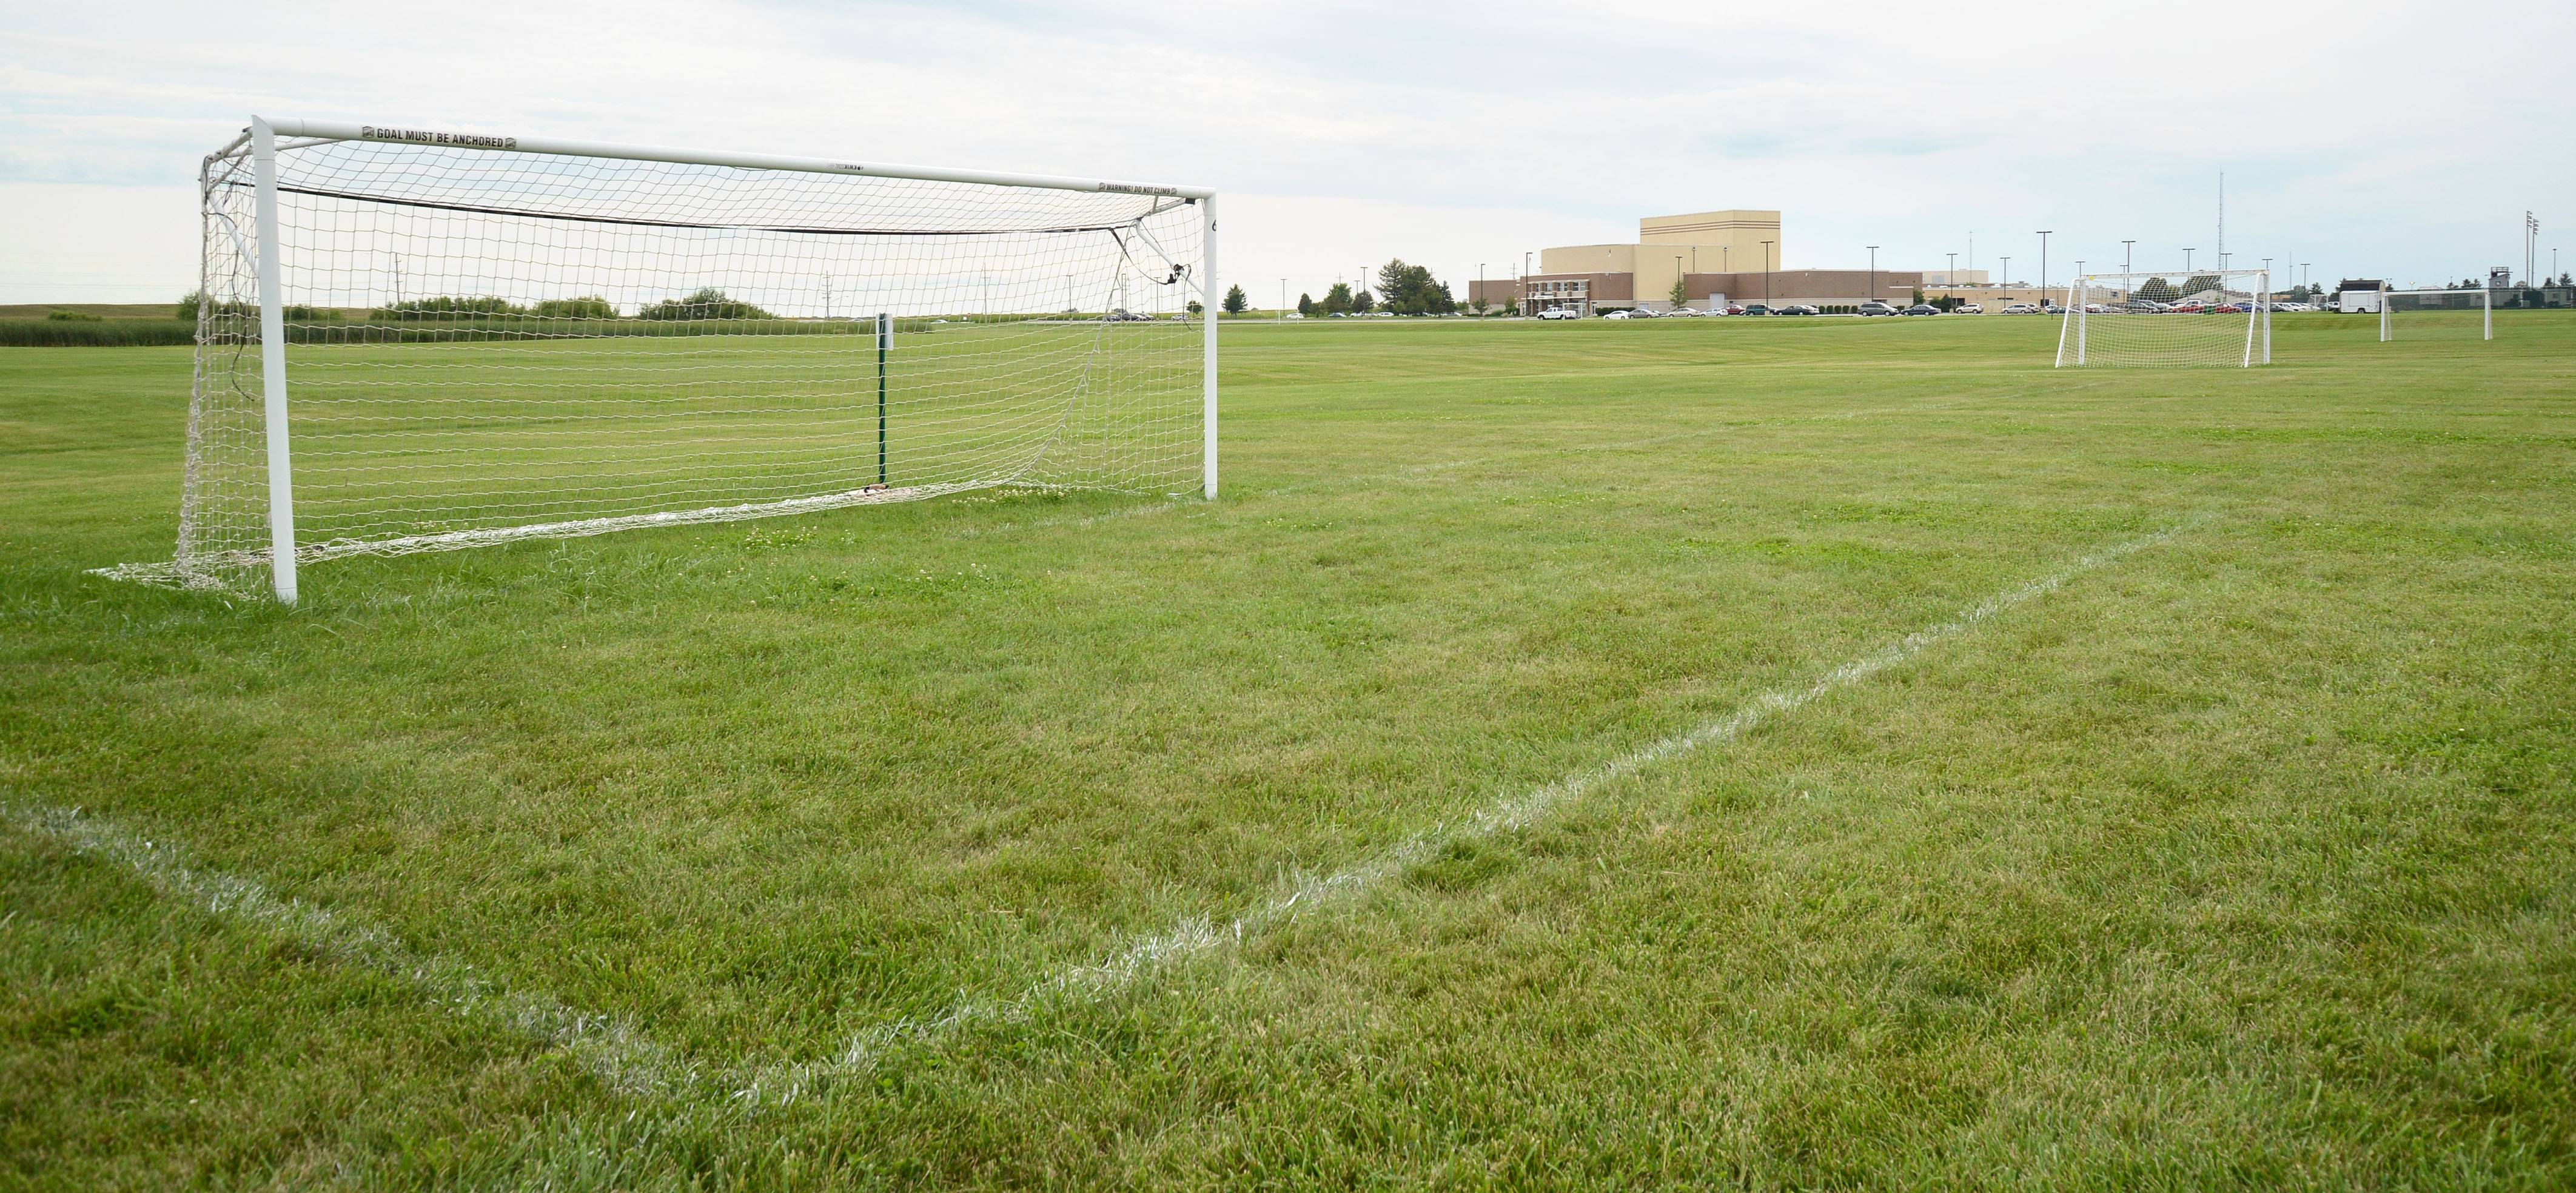 The Kaneland Youth Soccer Organization fields on Kaneland High School property, as well as fields farmed by the school's Future Farmers of America club, will be closed from September until mid-November, as TransCanada replaces three natural-gas transmission lines beneath the fields.